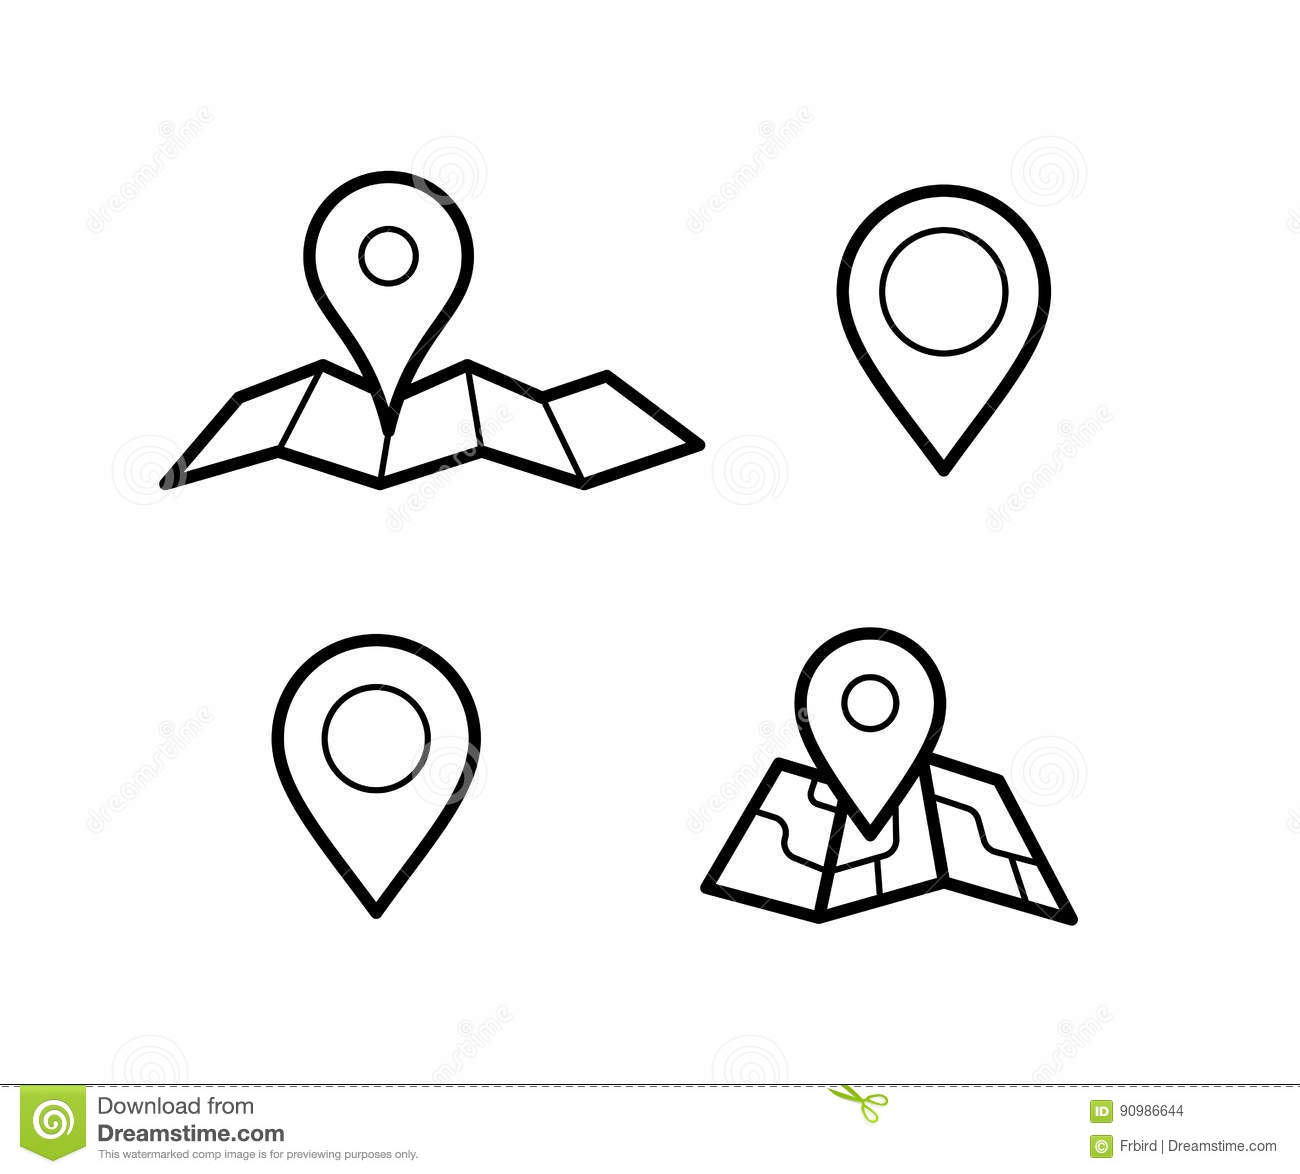 Maps And Pins Icons Stock Vector Illustration Of Symbol 90986644